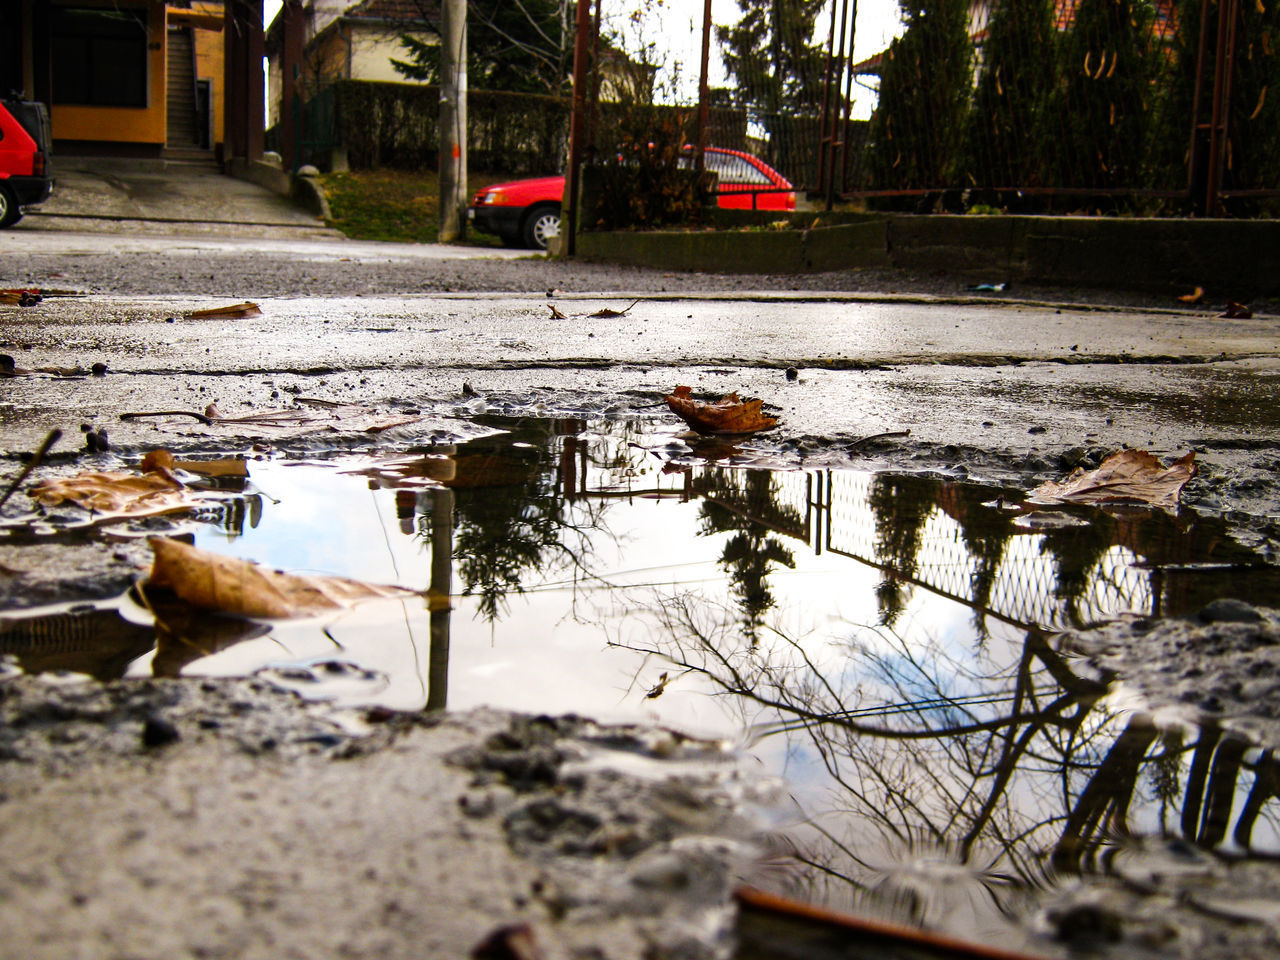 REFLECTION OF TREES ON WET PUDDLE IN STREET